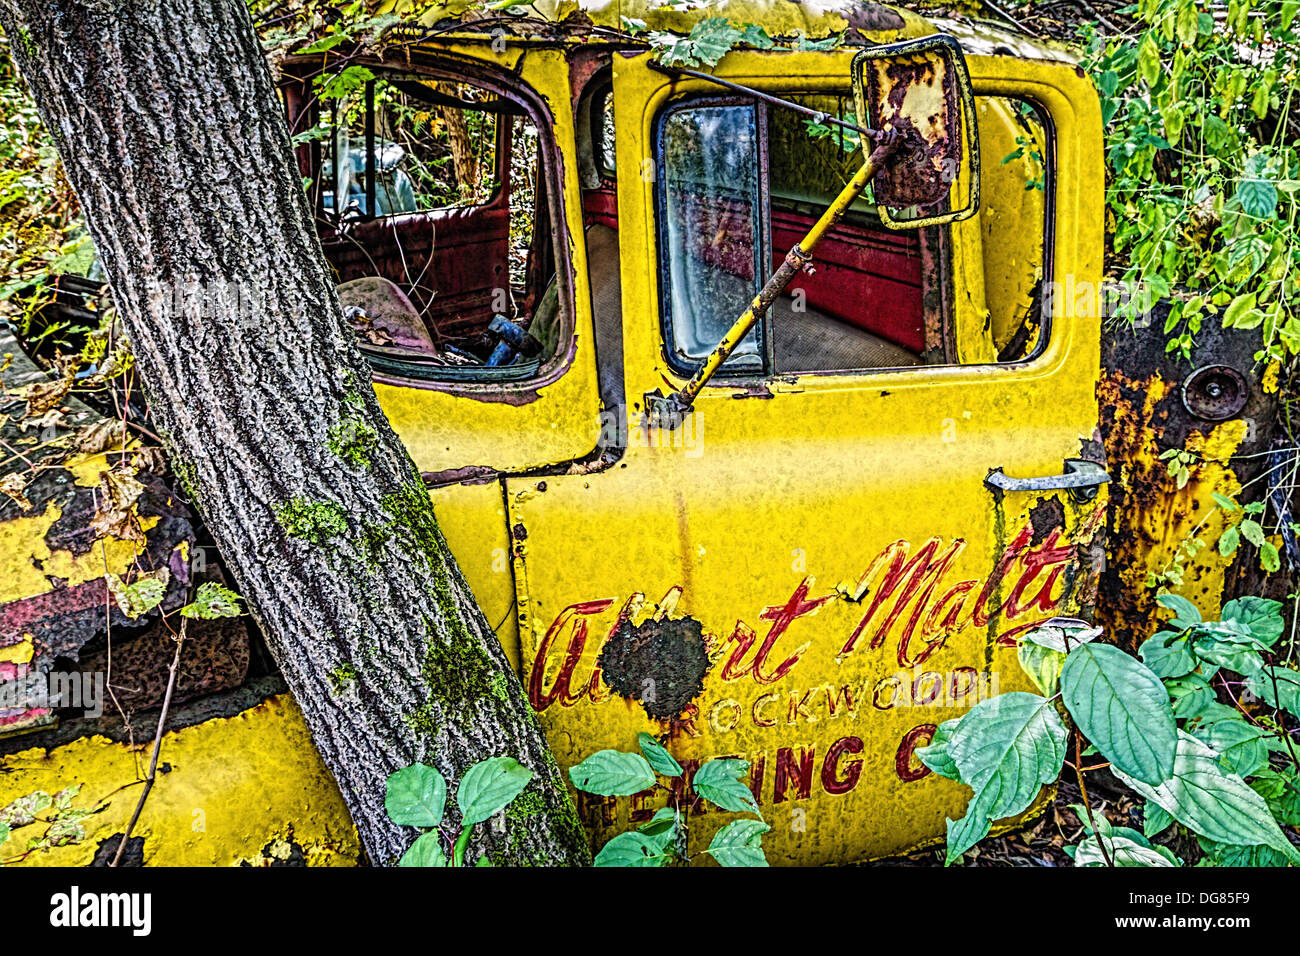 Classic truck in overgrown junk yard that has now become a forest. - Stock Image